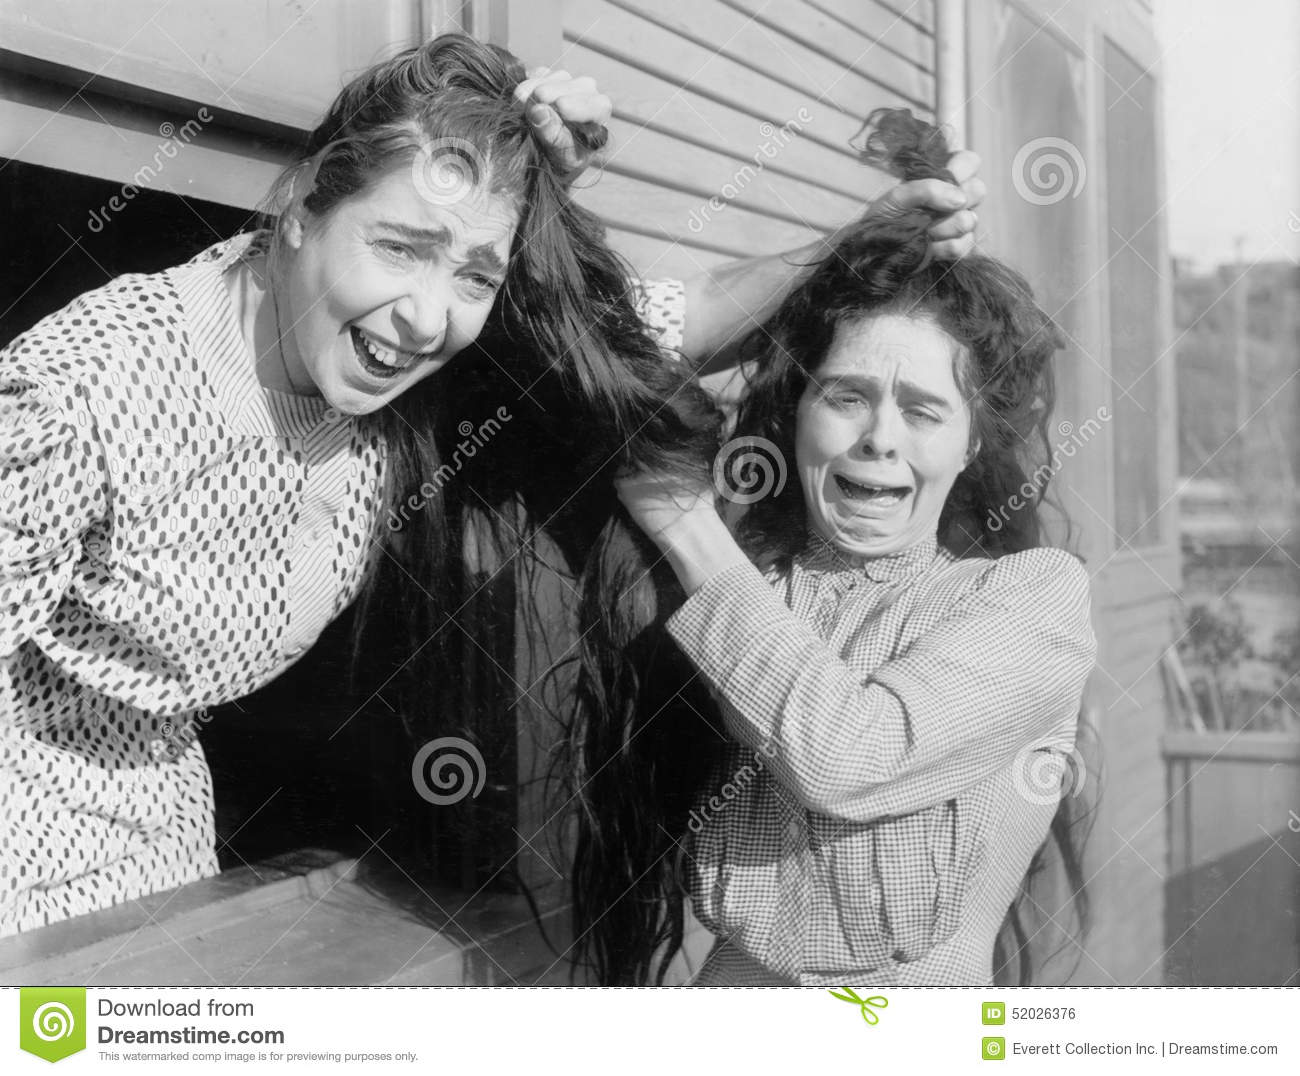 Two women fighting and pulling each others hair